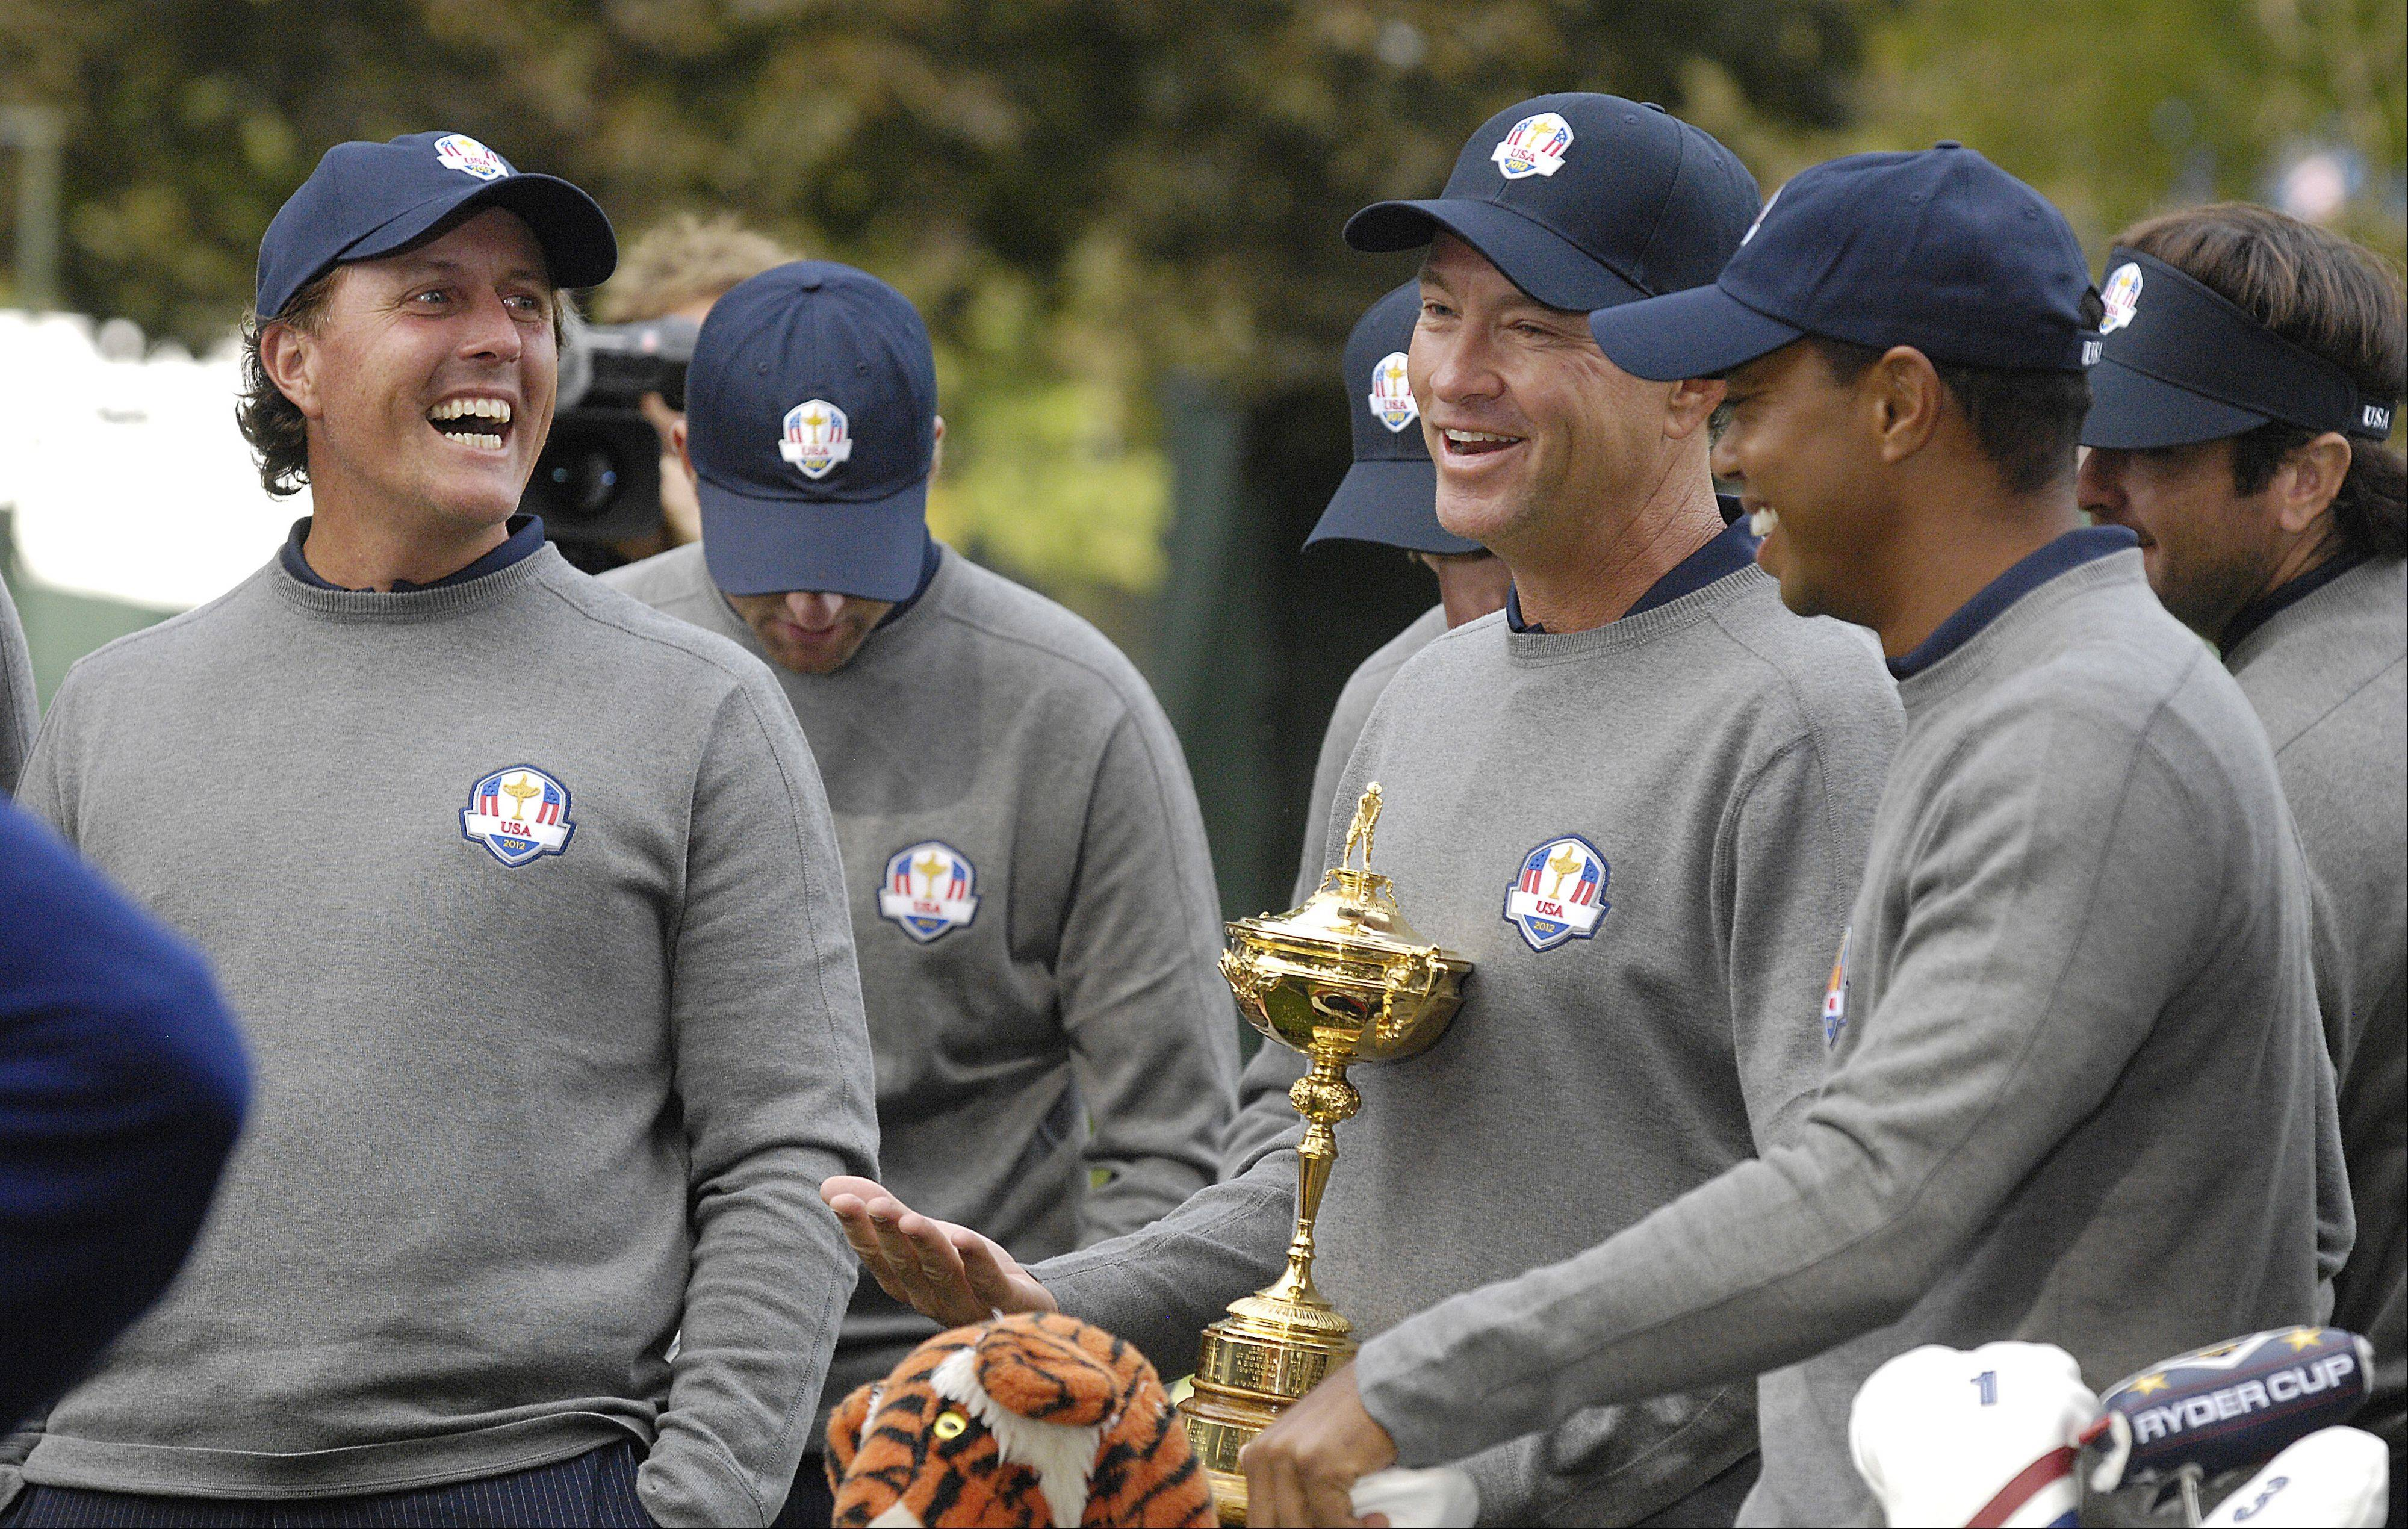 Phil Mickelson, Davis Love III, and Tiger Woods joke around during the U.S. Ryder Cup team photo session.